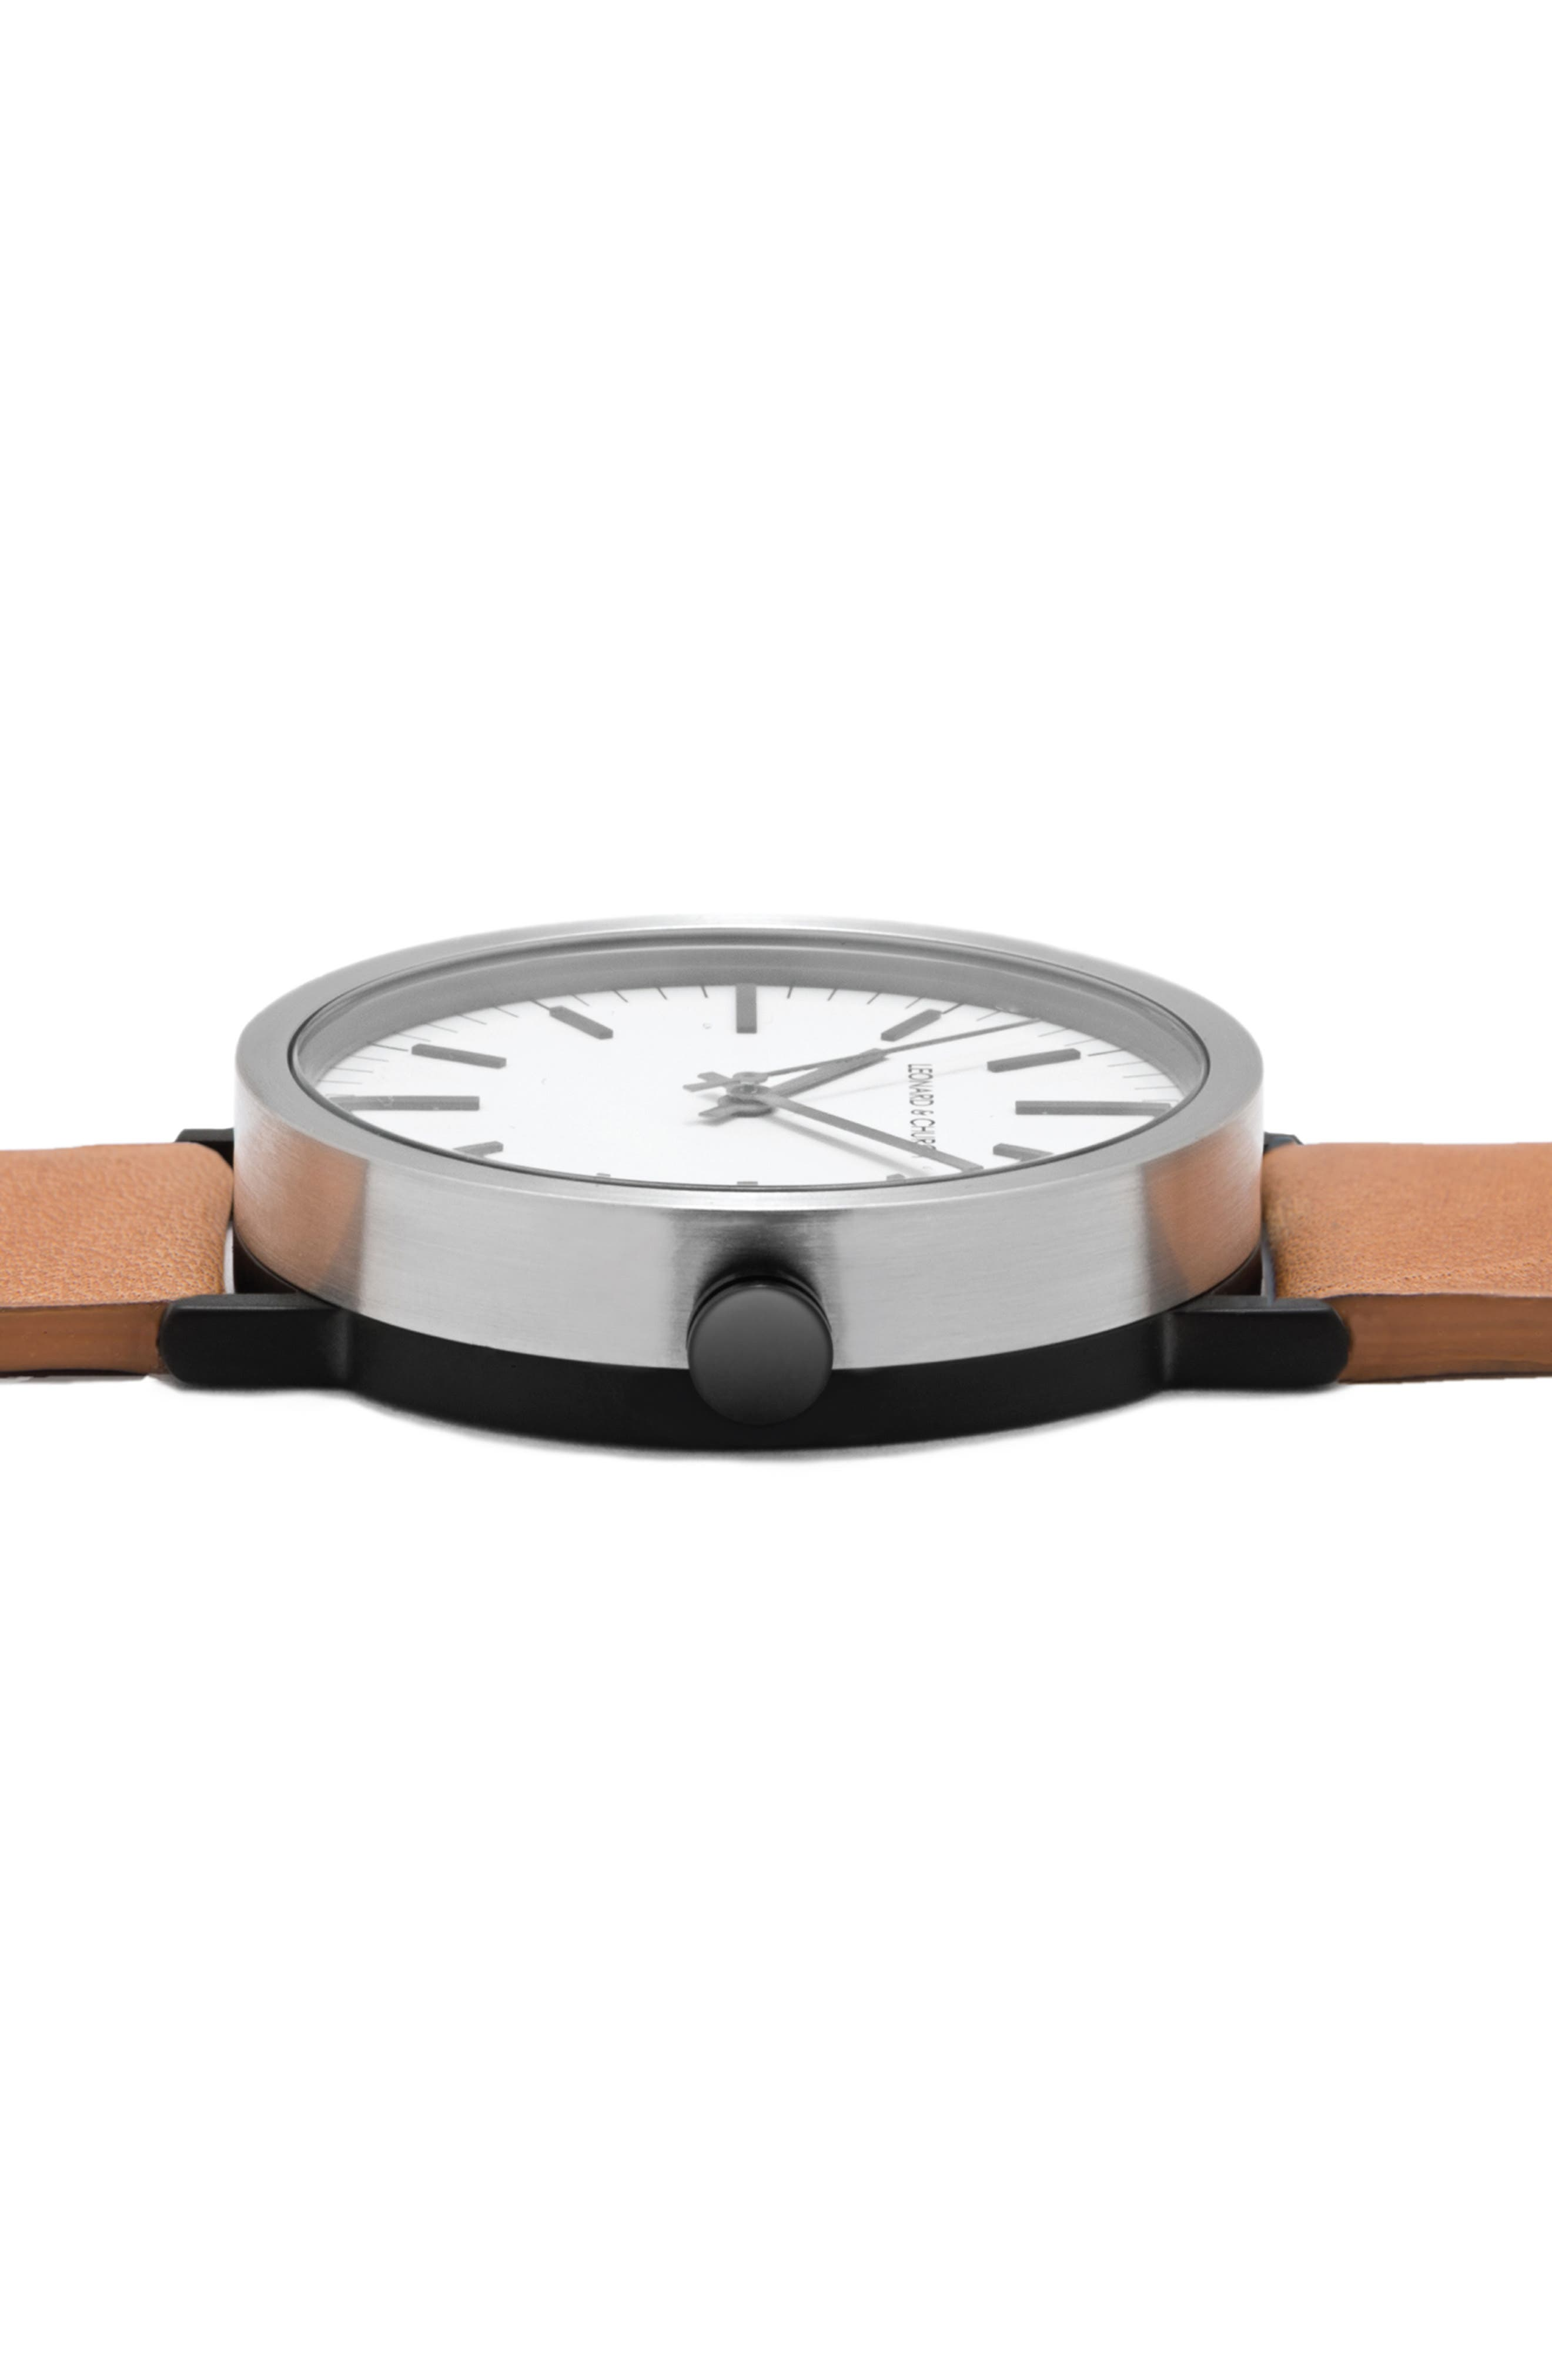 Leonard & Church Thompson Leather Strap Watch, 40mm,                             Alternate thumbnail 3, color,                             Chestnut/ White/ Black